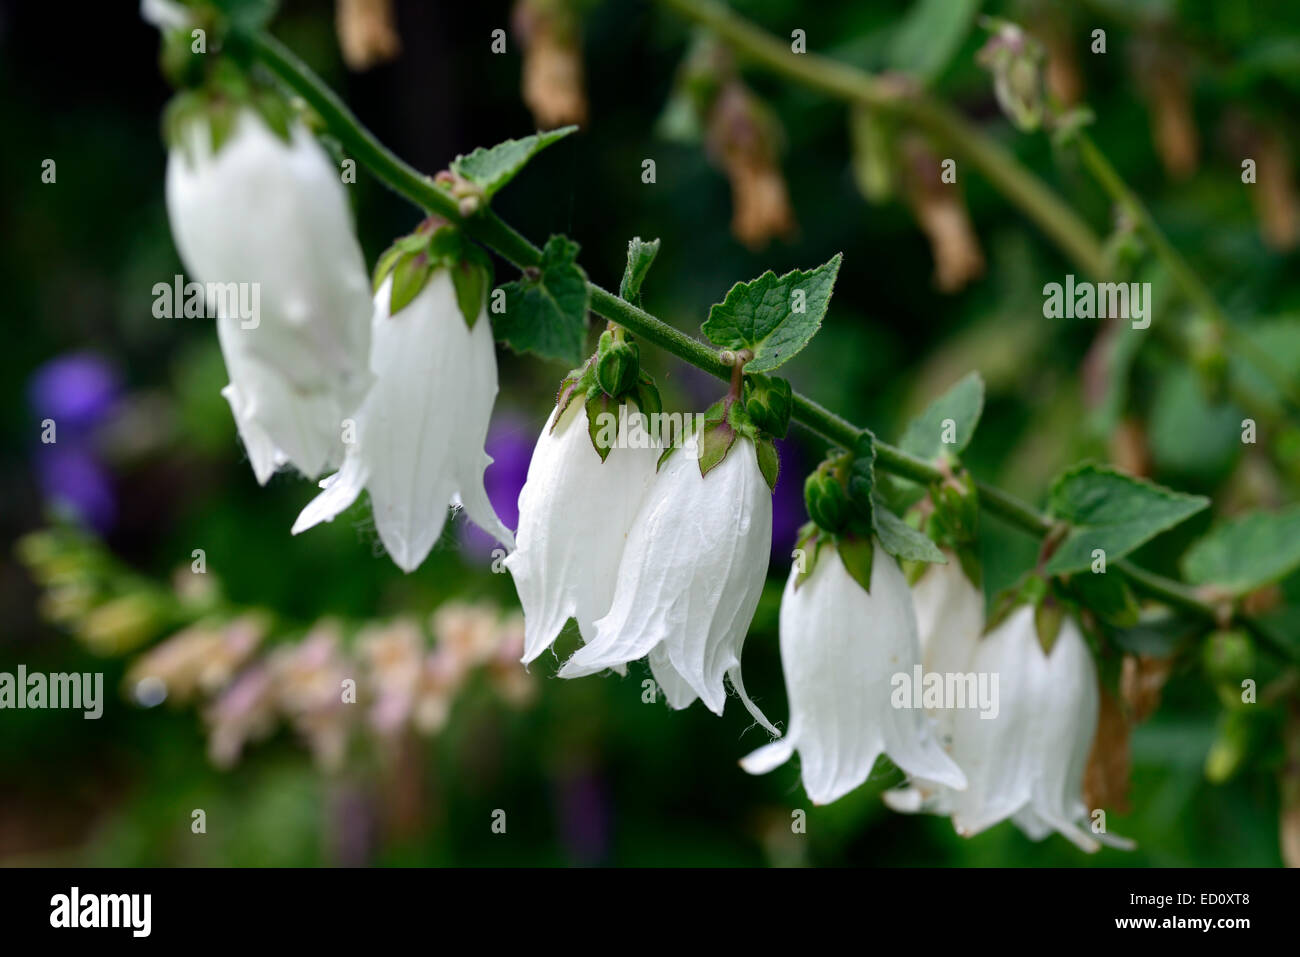 White bellflowers stock photos white bellflowers stock images alamy campanula alliariifolia ivory bells white bellflowers bells blooms campanulas flower flowers garden gardens perennials stock mightylinksfo